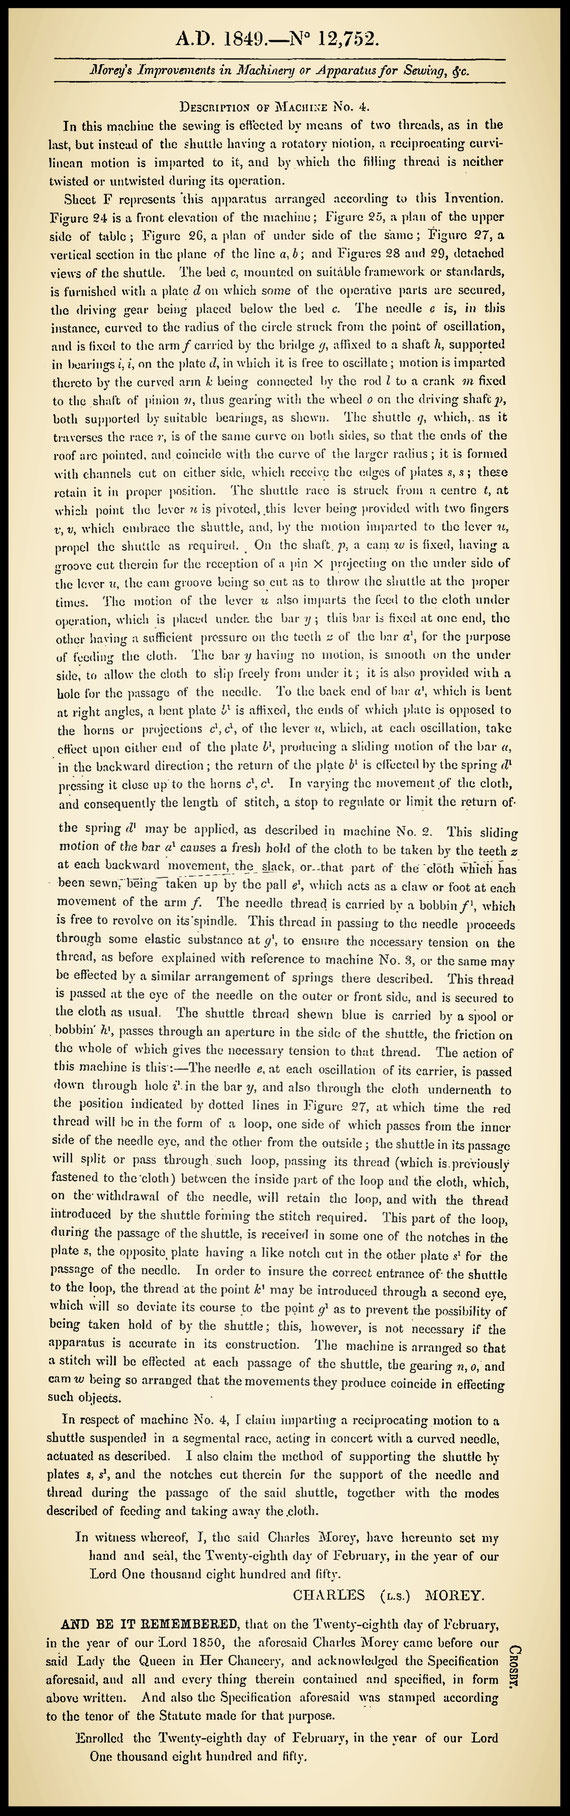 GB 12.752/1849  Description of Machine No. 4